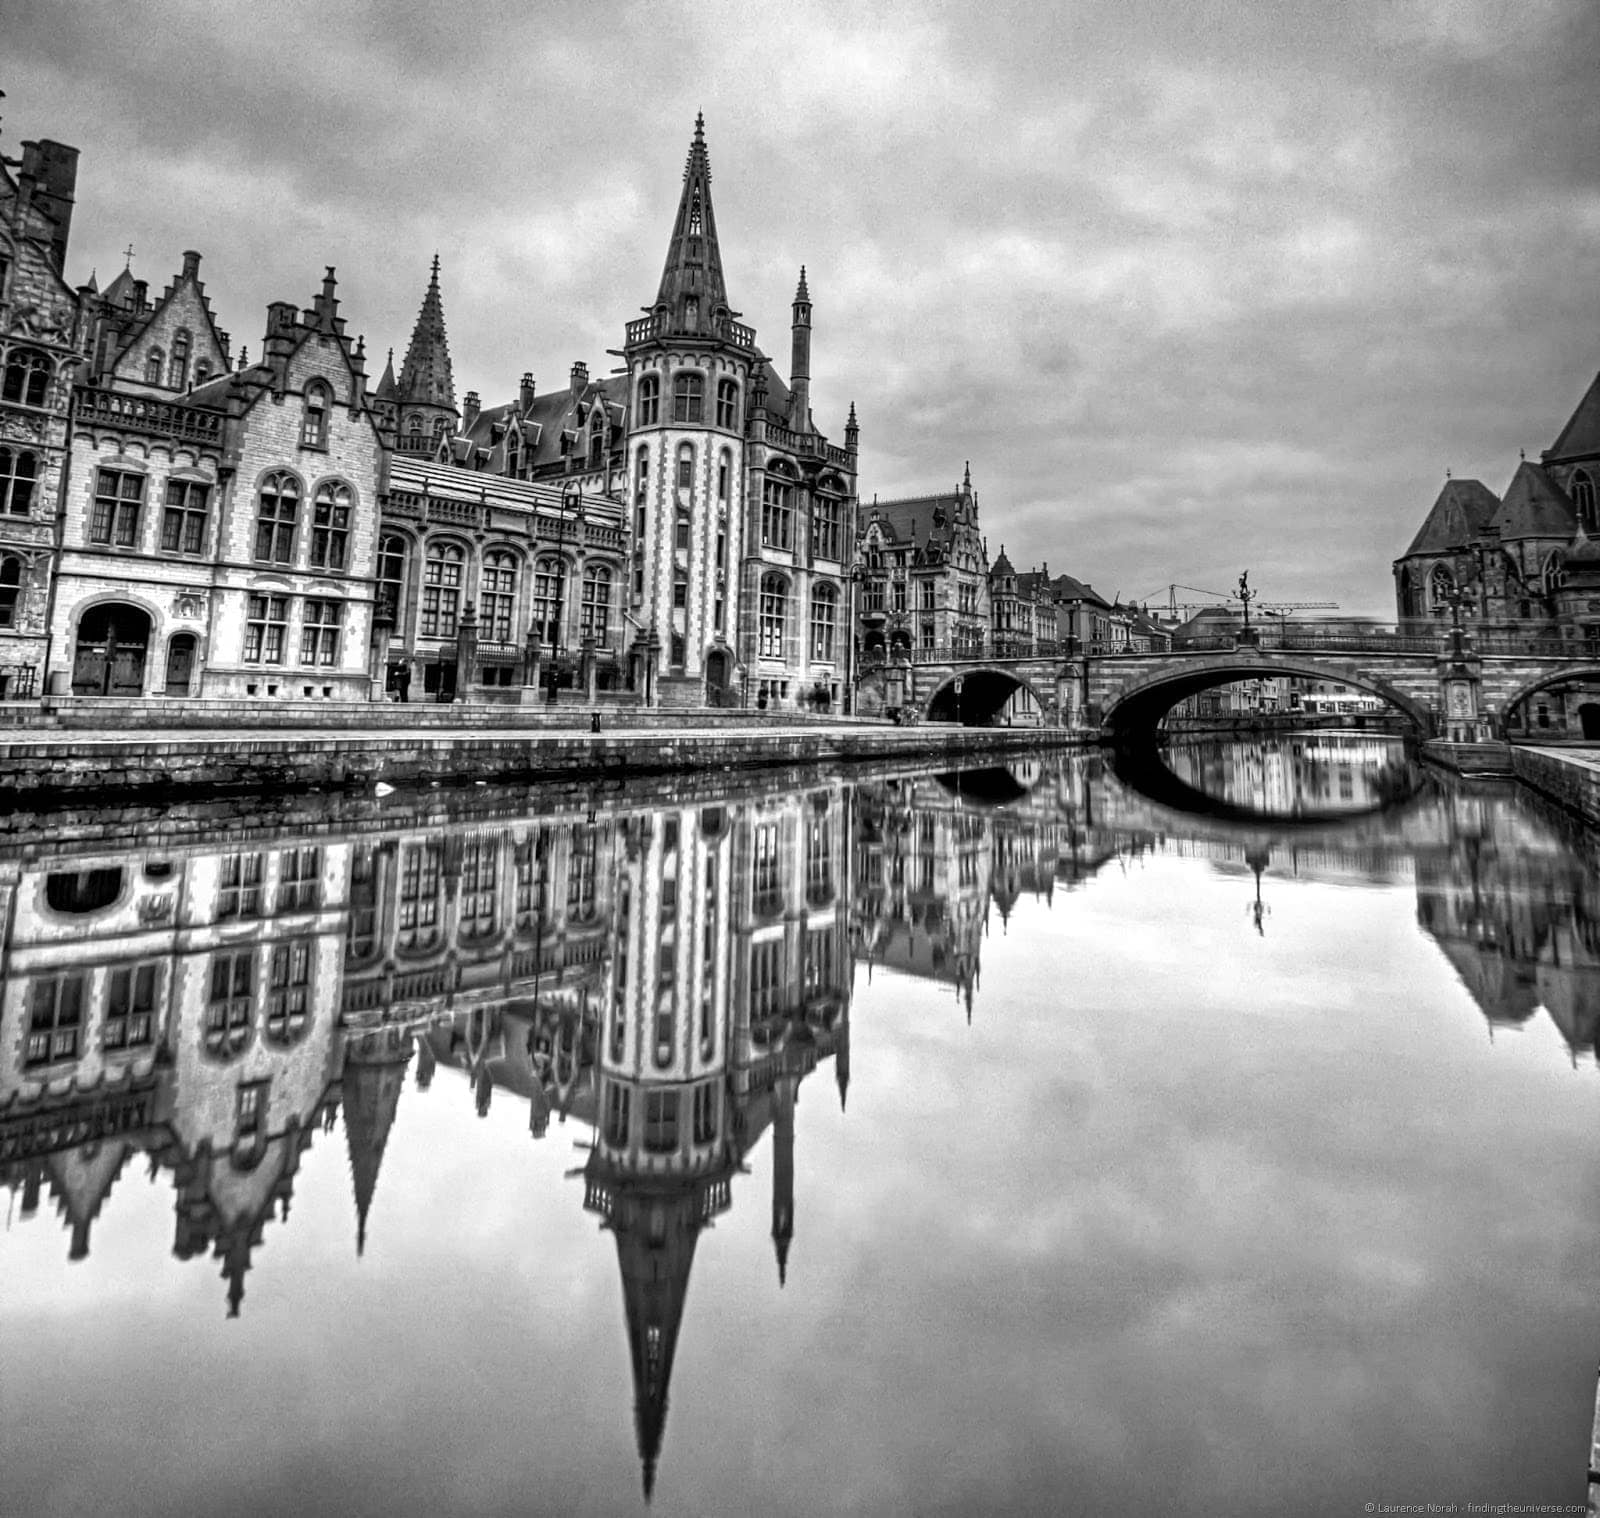 Graslei region Ghent waterways reflections 3